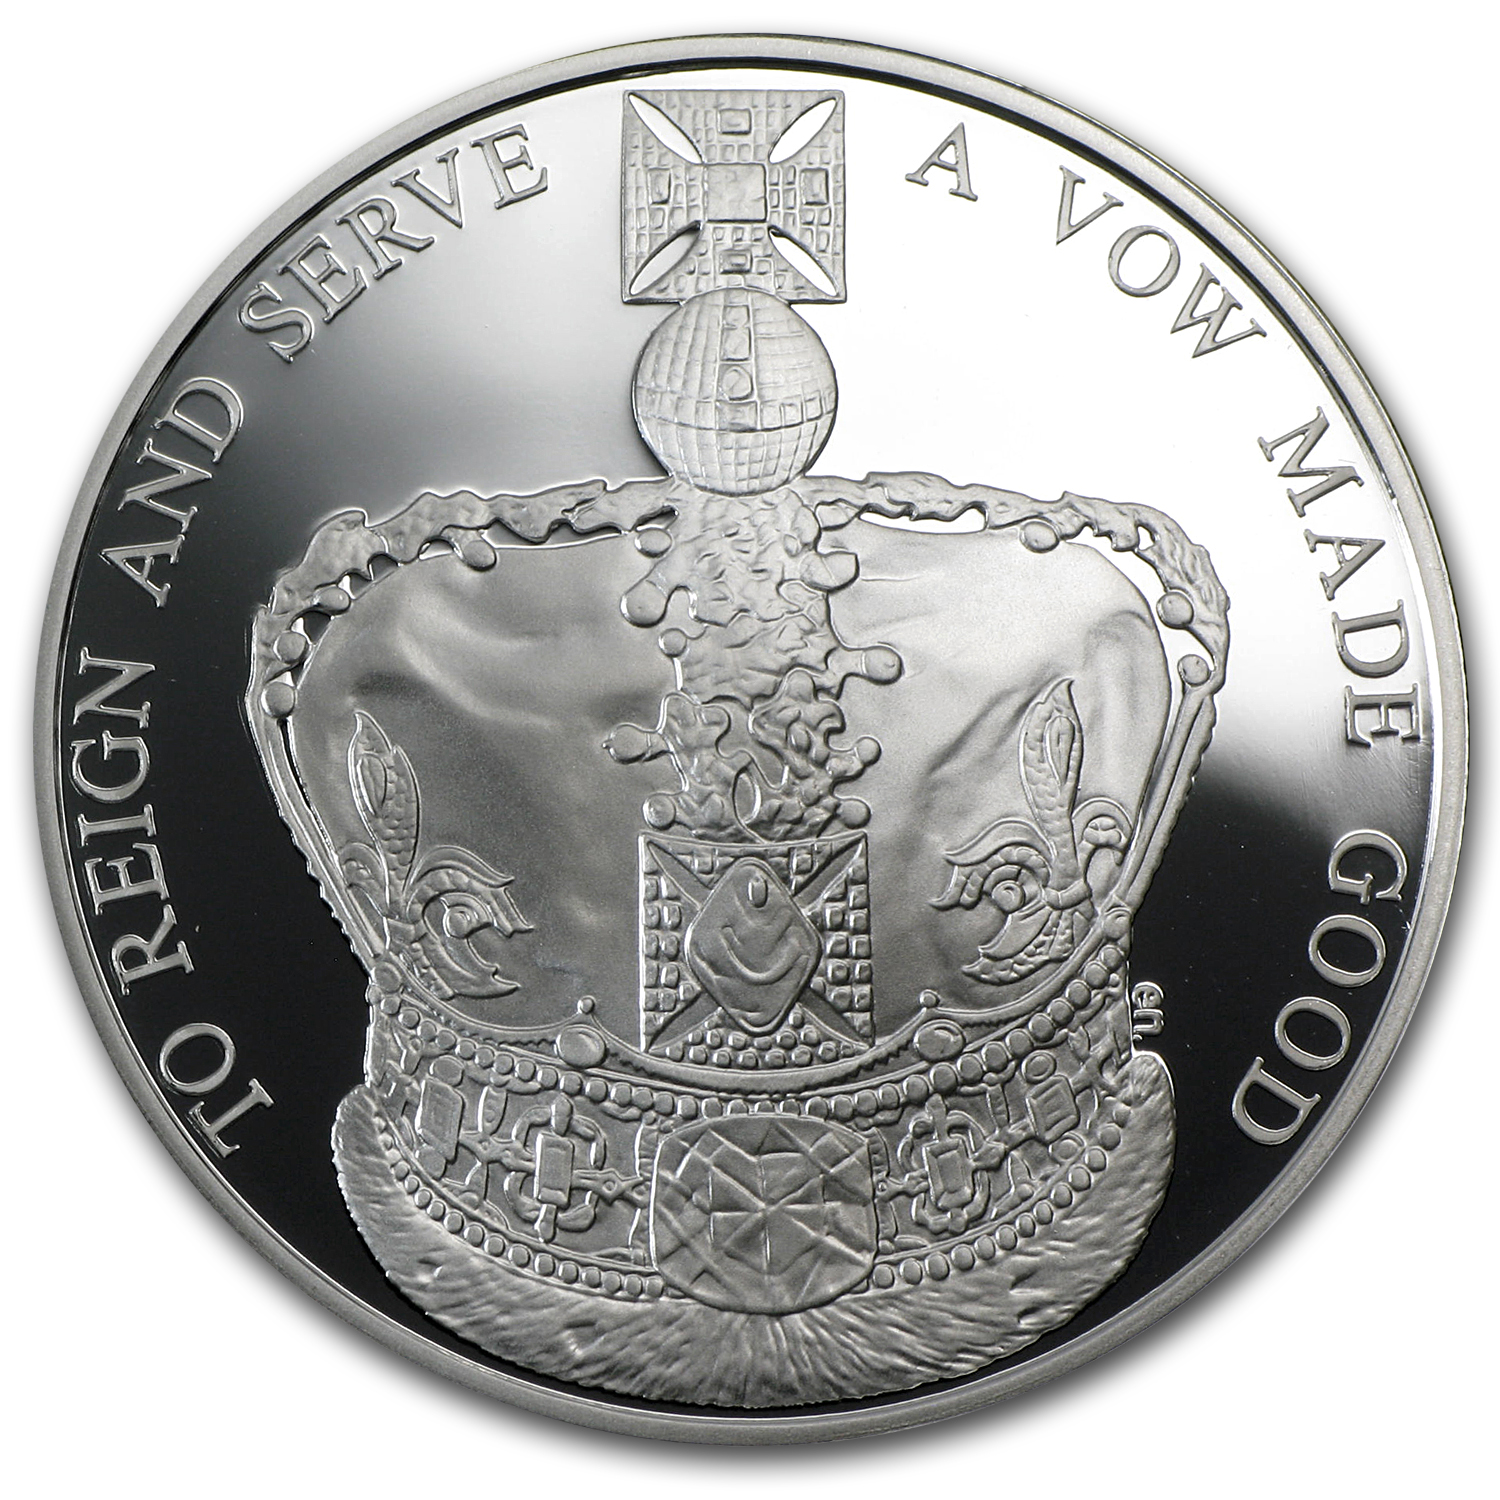 2013 Great Britain £5 Silver Proof - Queen's Coronation Anniv.